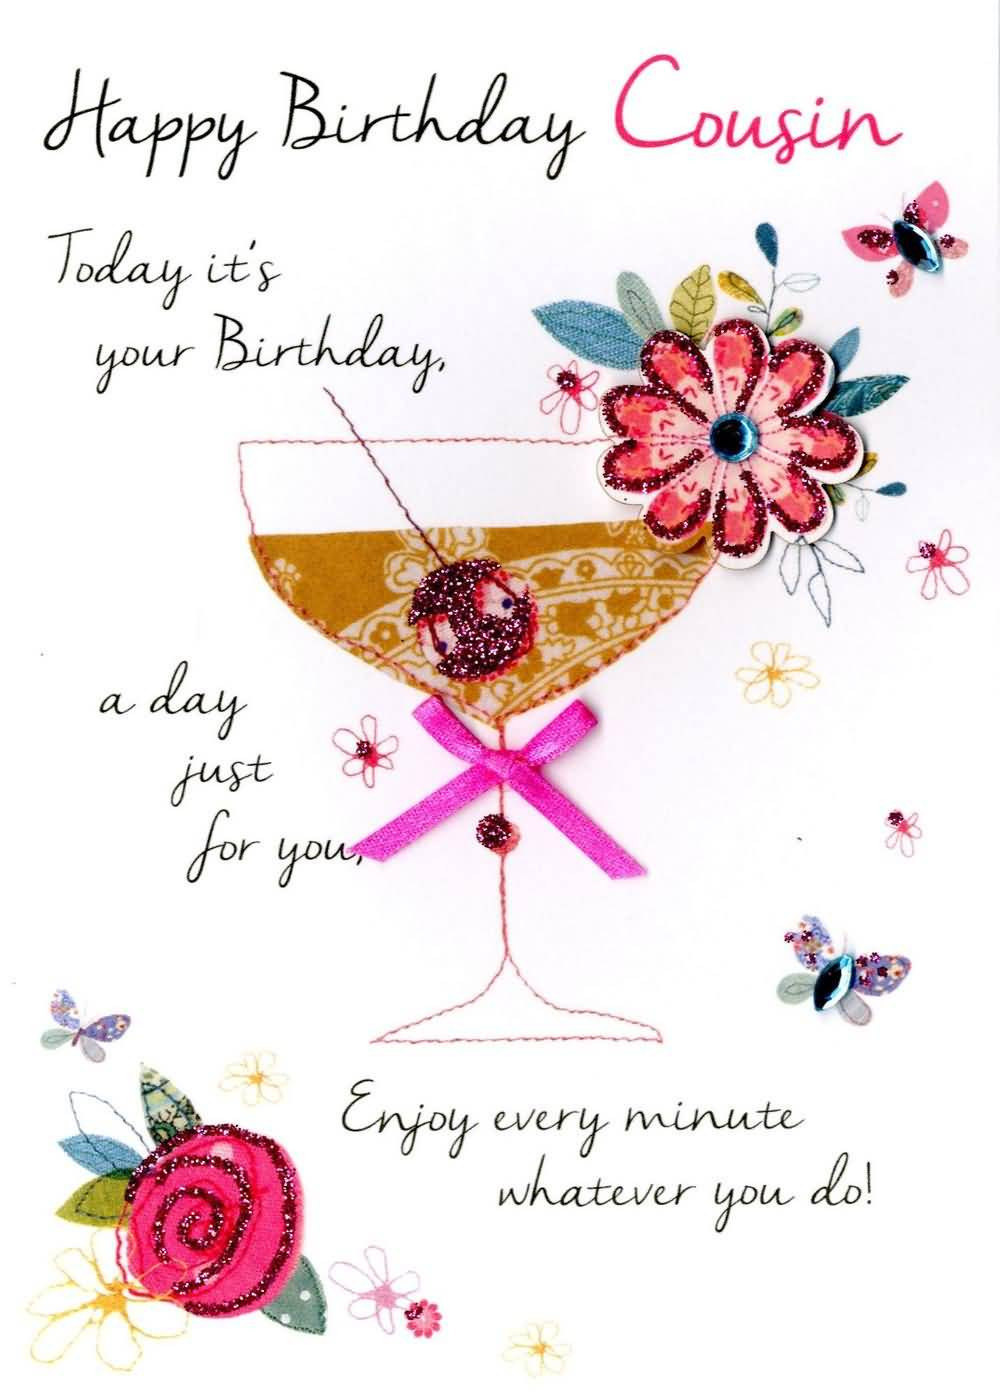 Best ideas about Birthday Wishes For A Cousin . Save or Pin Top 50 Cousin Birthday Wishes And Greetings Now.